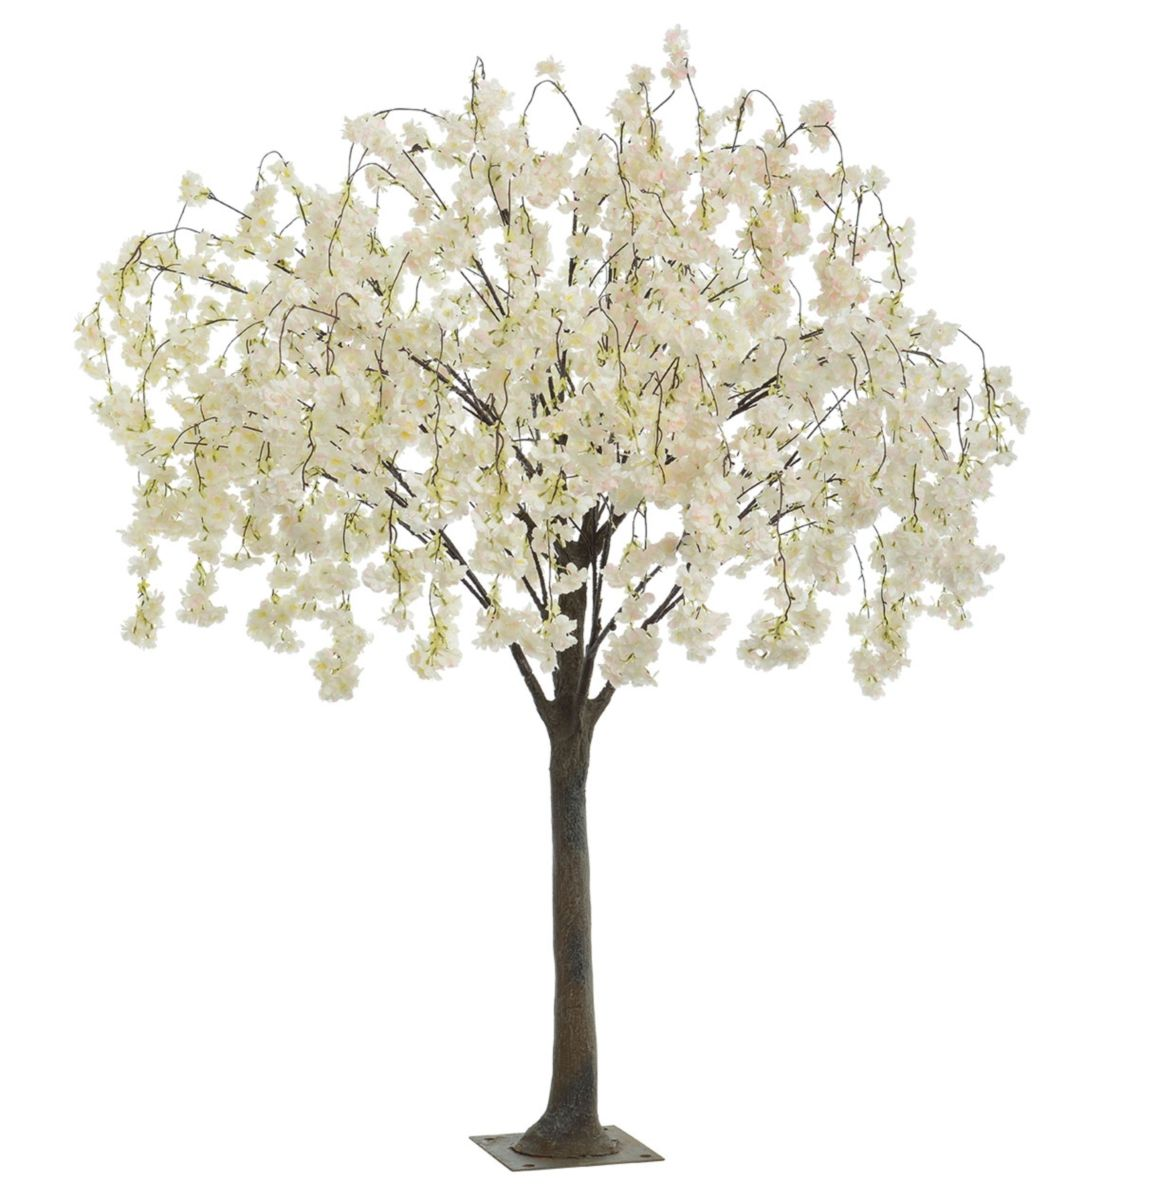 Artificial Blossom Tree With Pink Cream White Trailing Or Hanging Flowers Artificial Cherry Blossom Tree Blossom Trees Blossom Tree Wedding